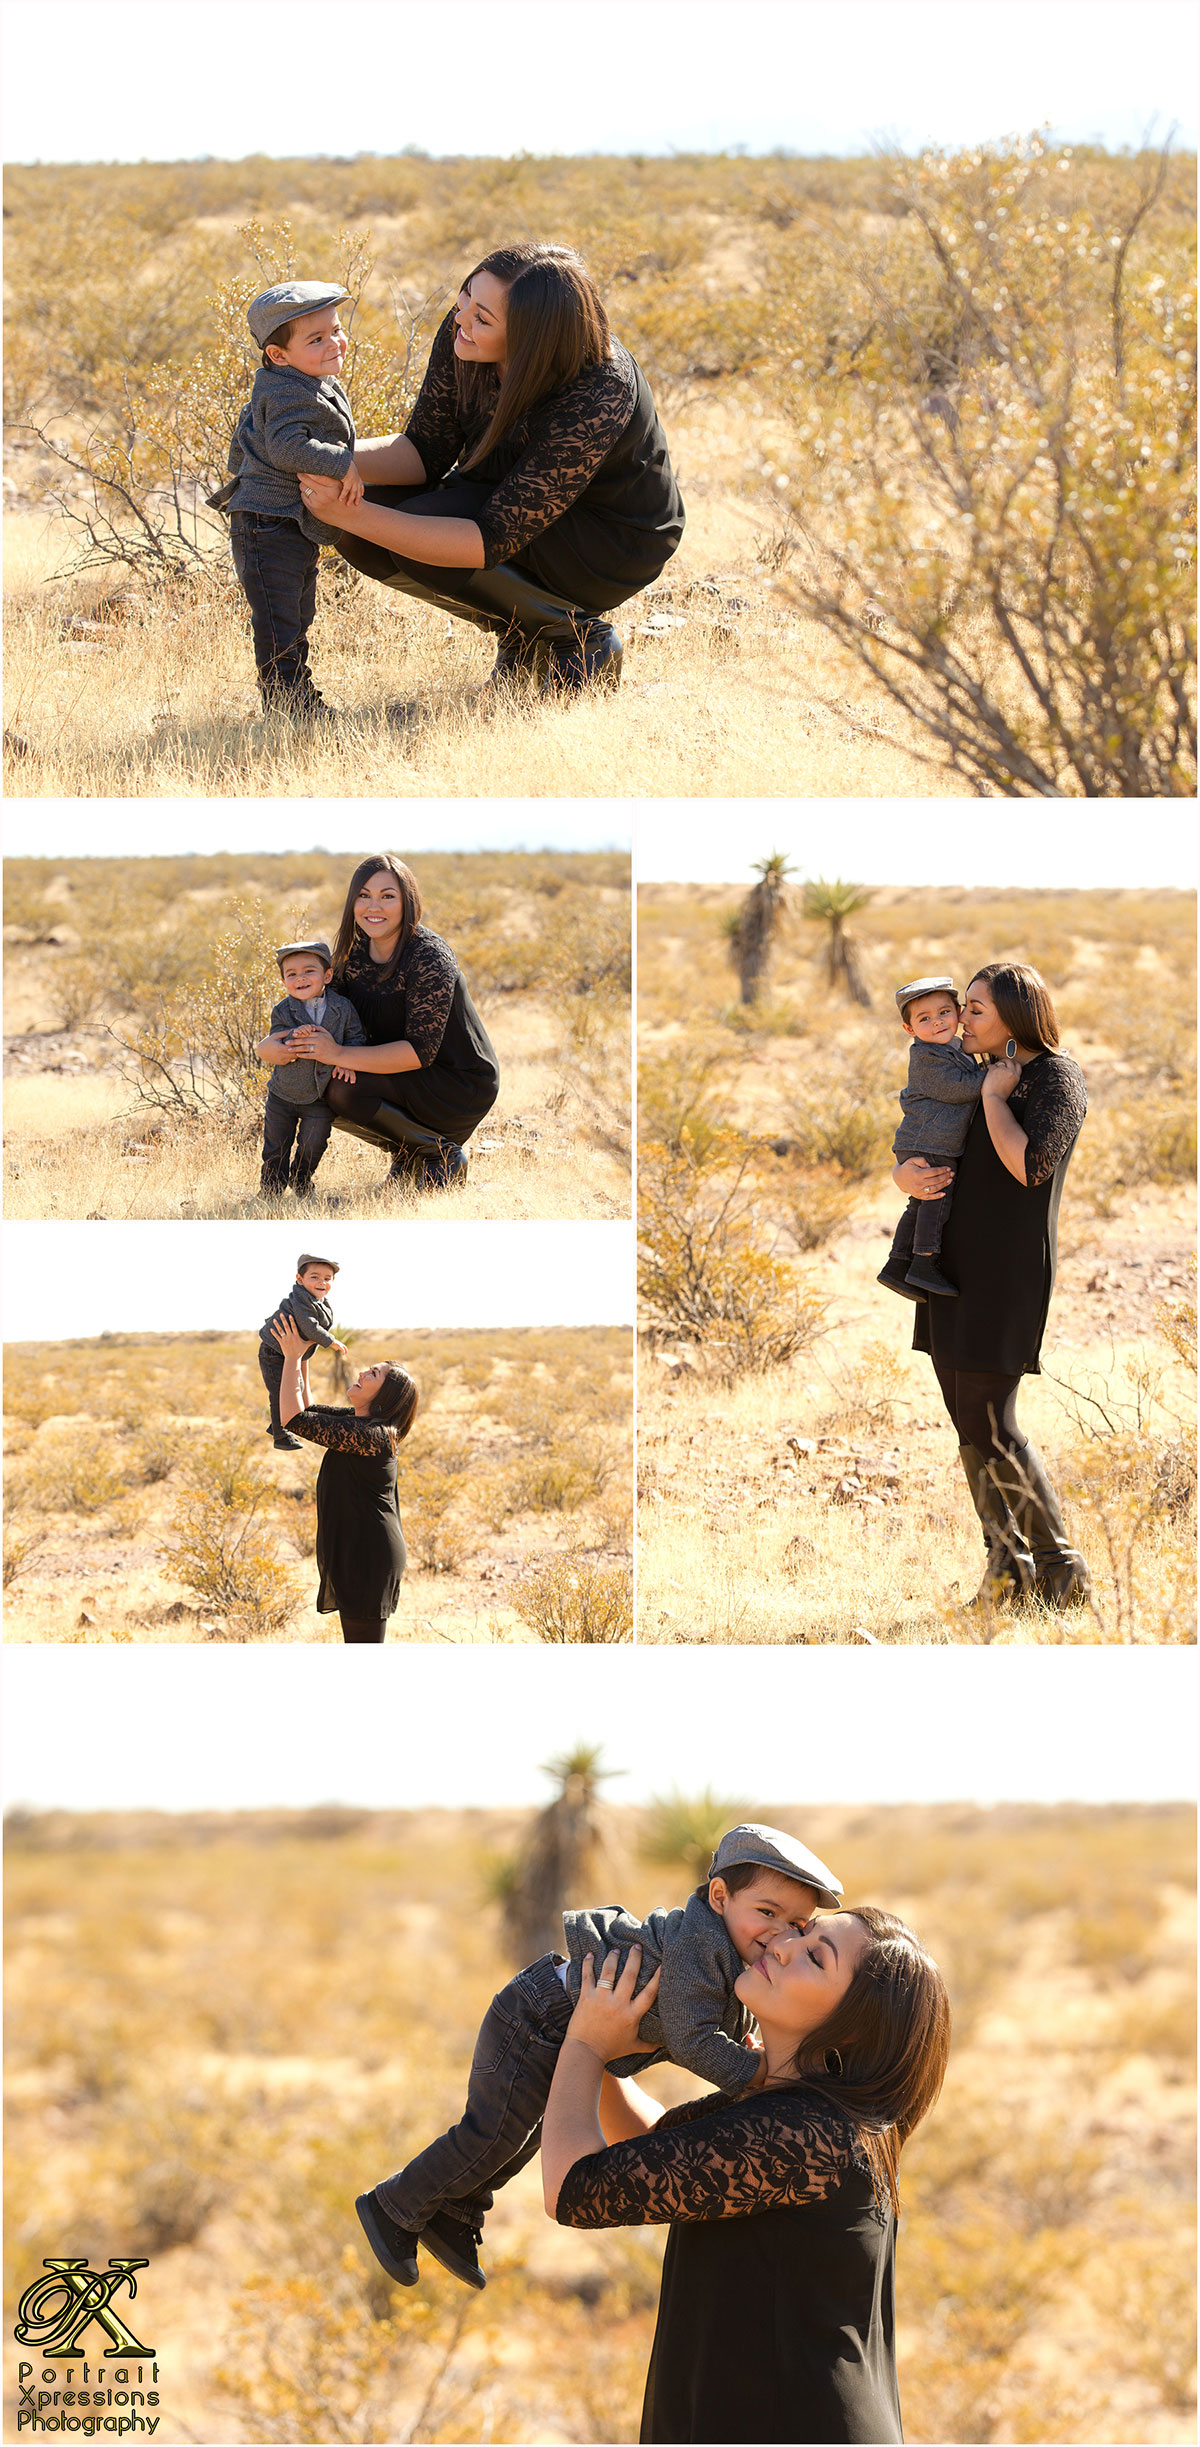 Outdoor portraits of mom and son